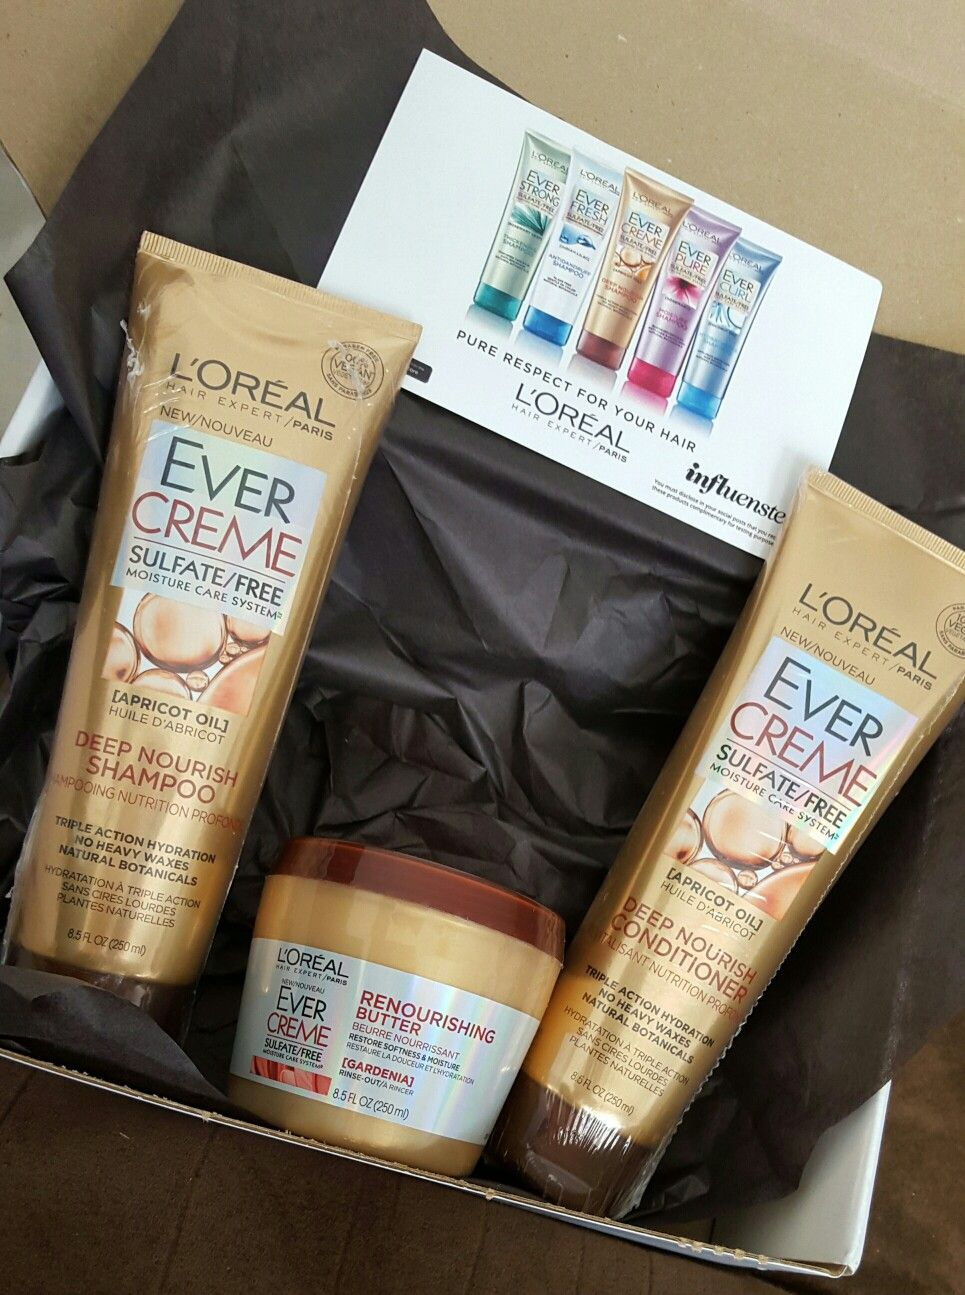 Received another free voxbox of goodies to try